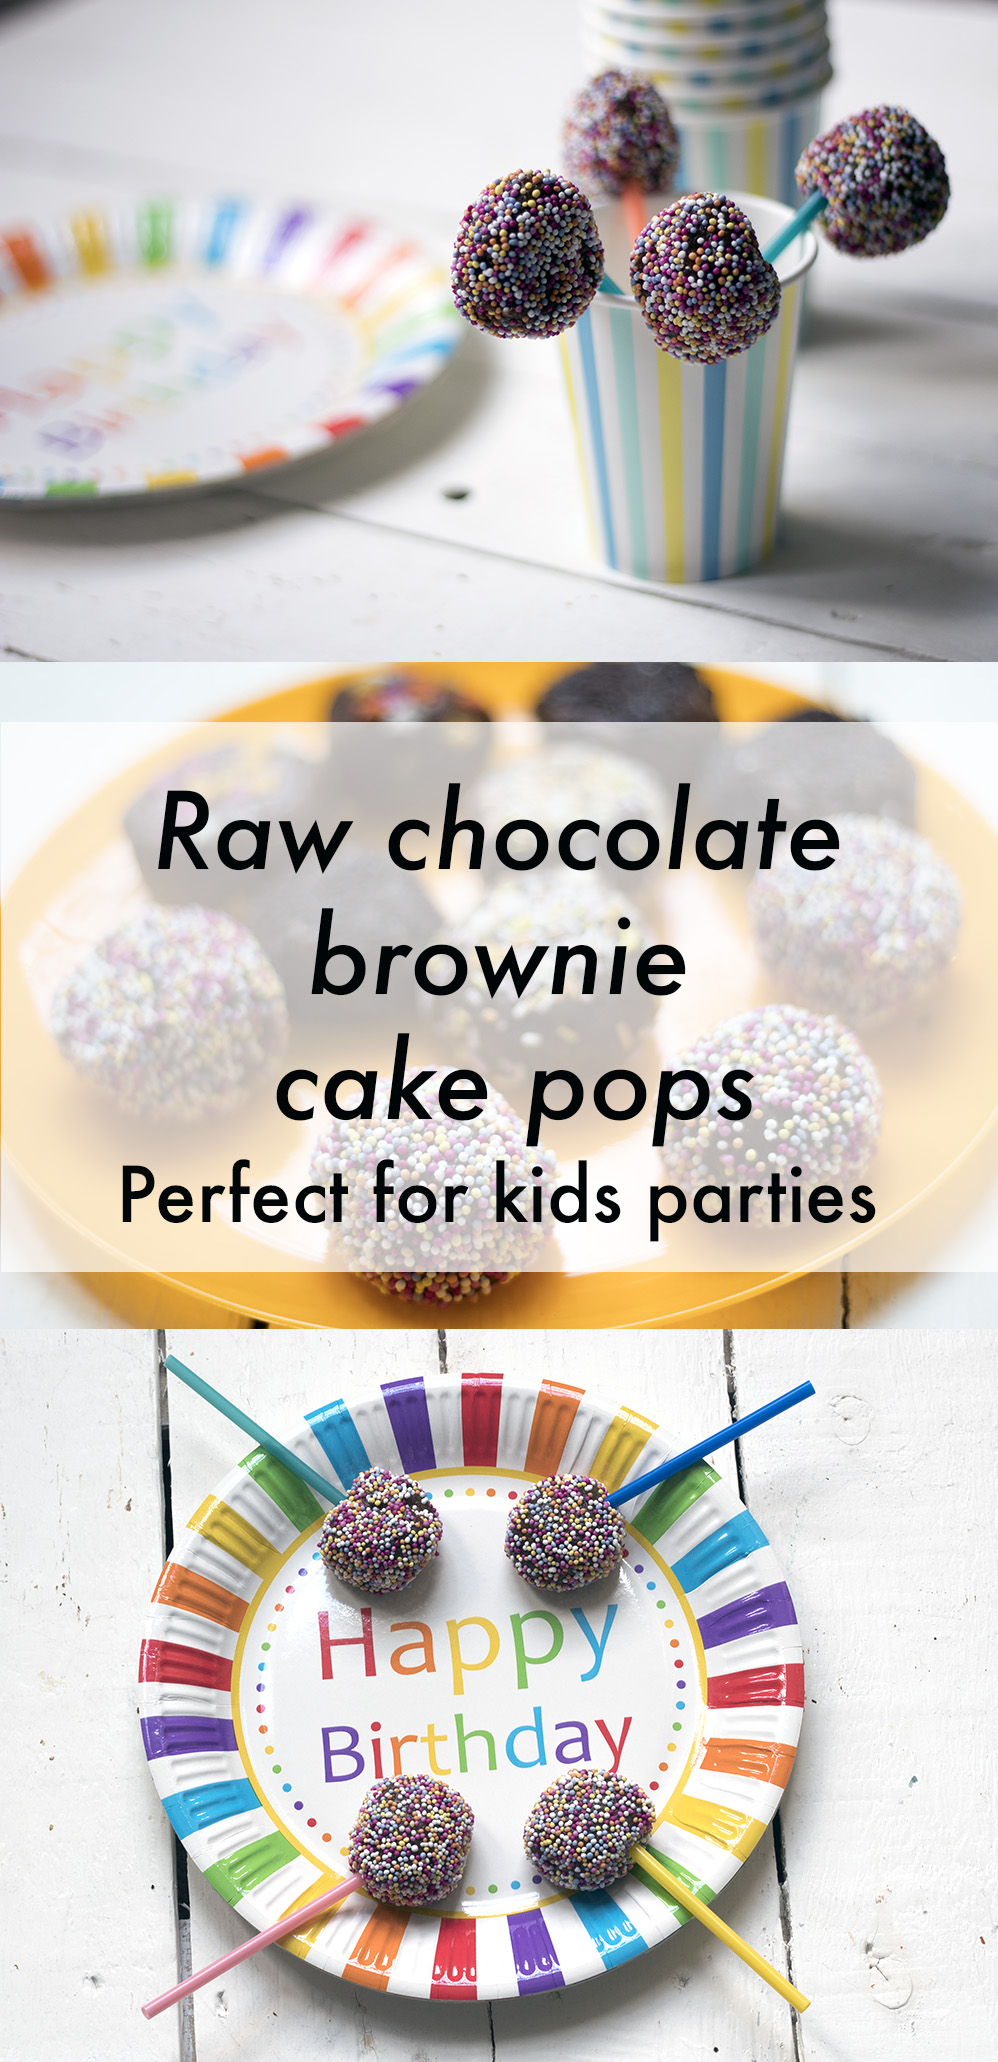 Raw-chocolate-brownie-cake-pops-perfect-healthy-kids-party-food